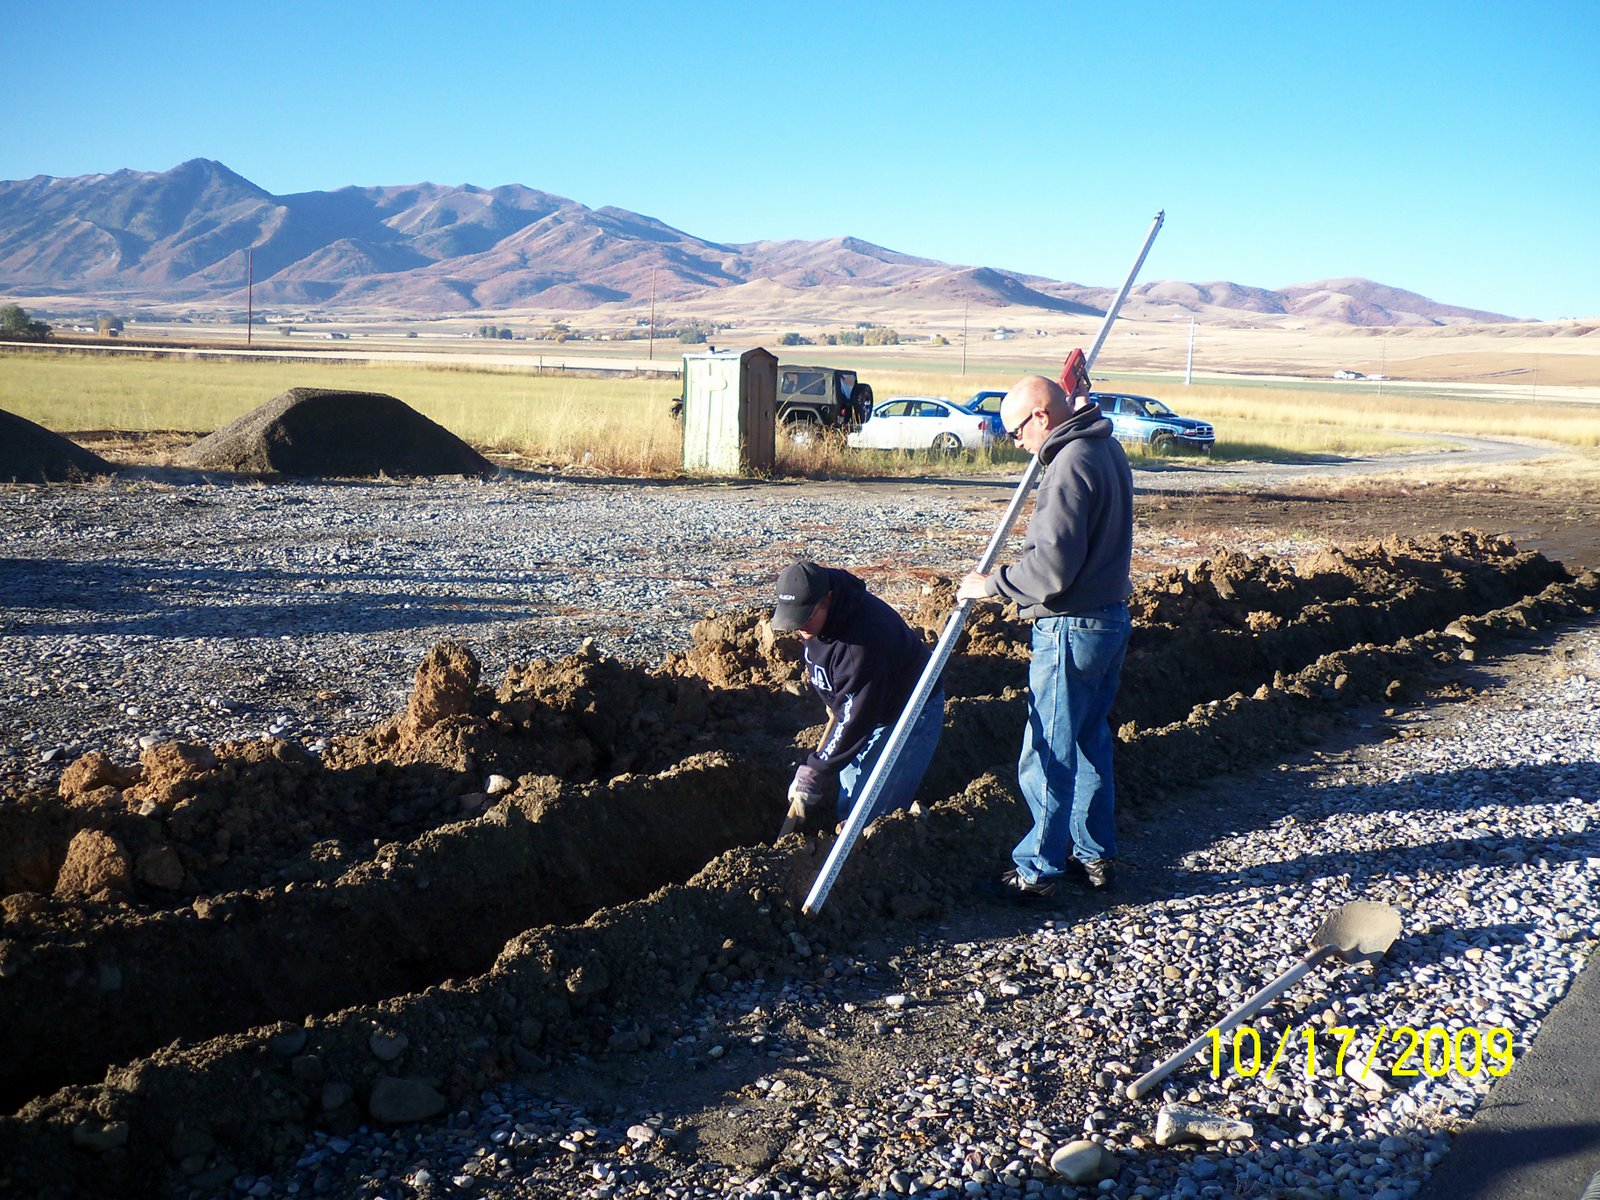 KEITH MERRILL WORKS LEVELING TRENCH BASE AS JERRY COKELY ASSISTS WITH LAZER TRANSIT ROD.